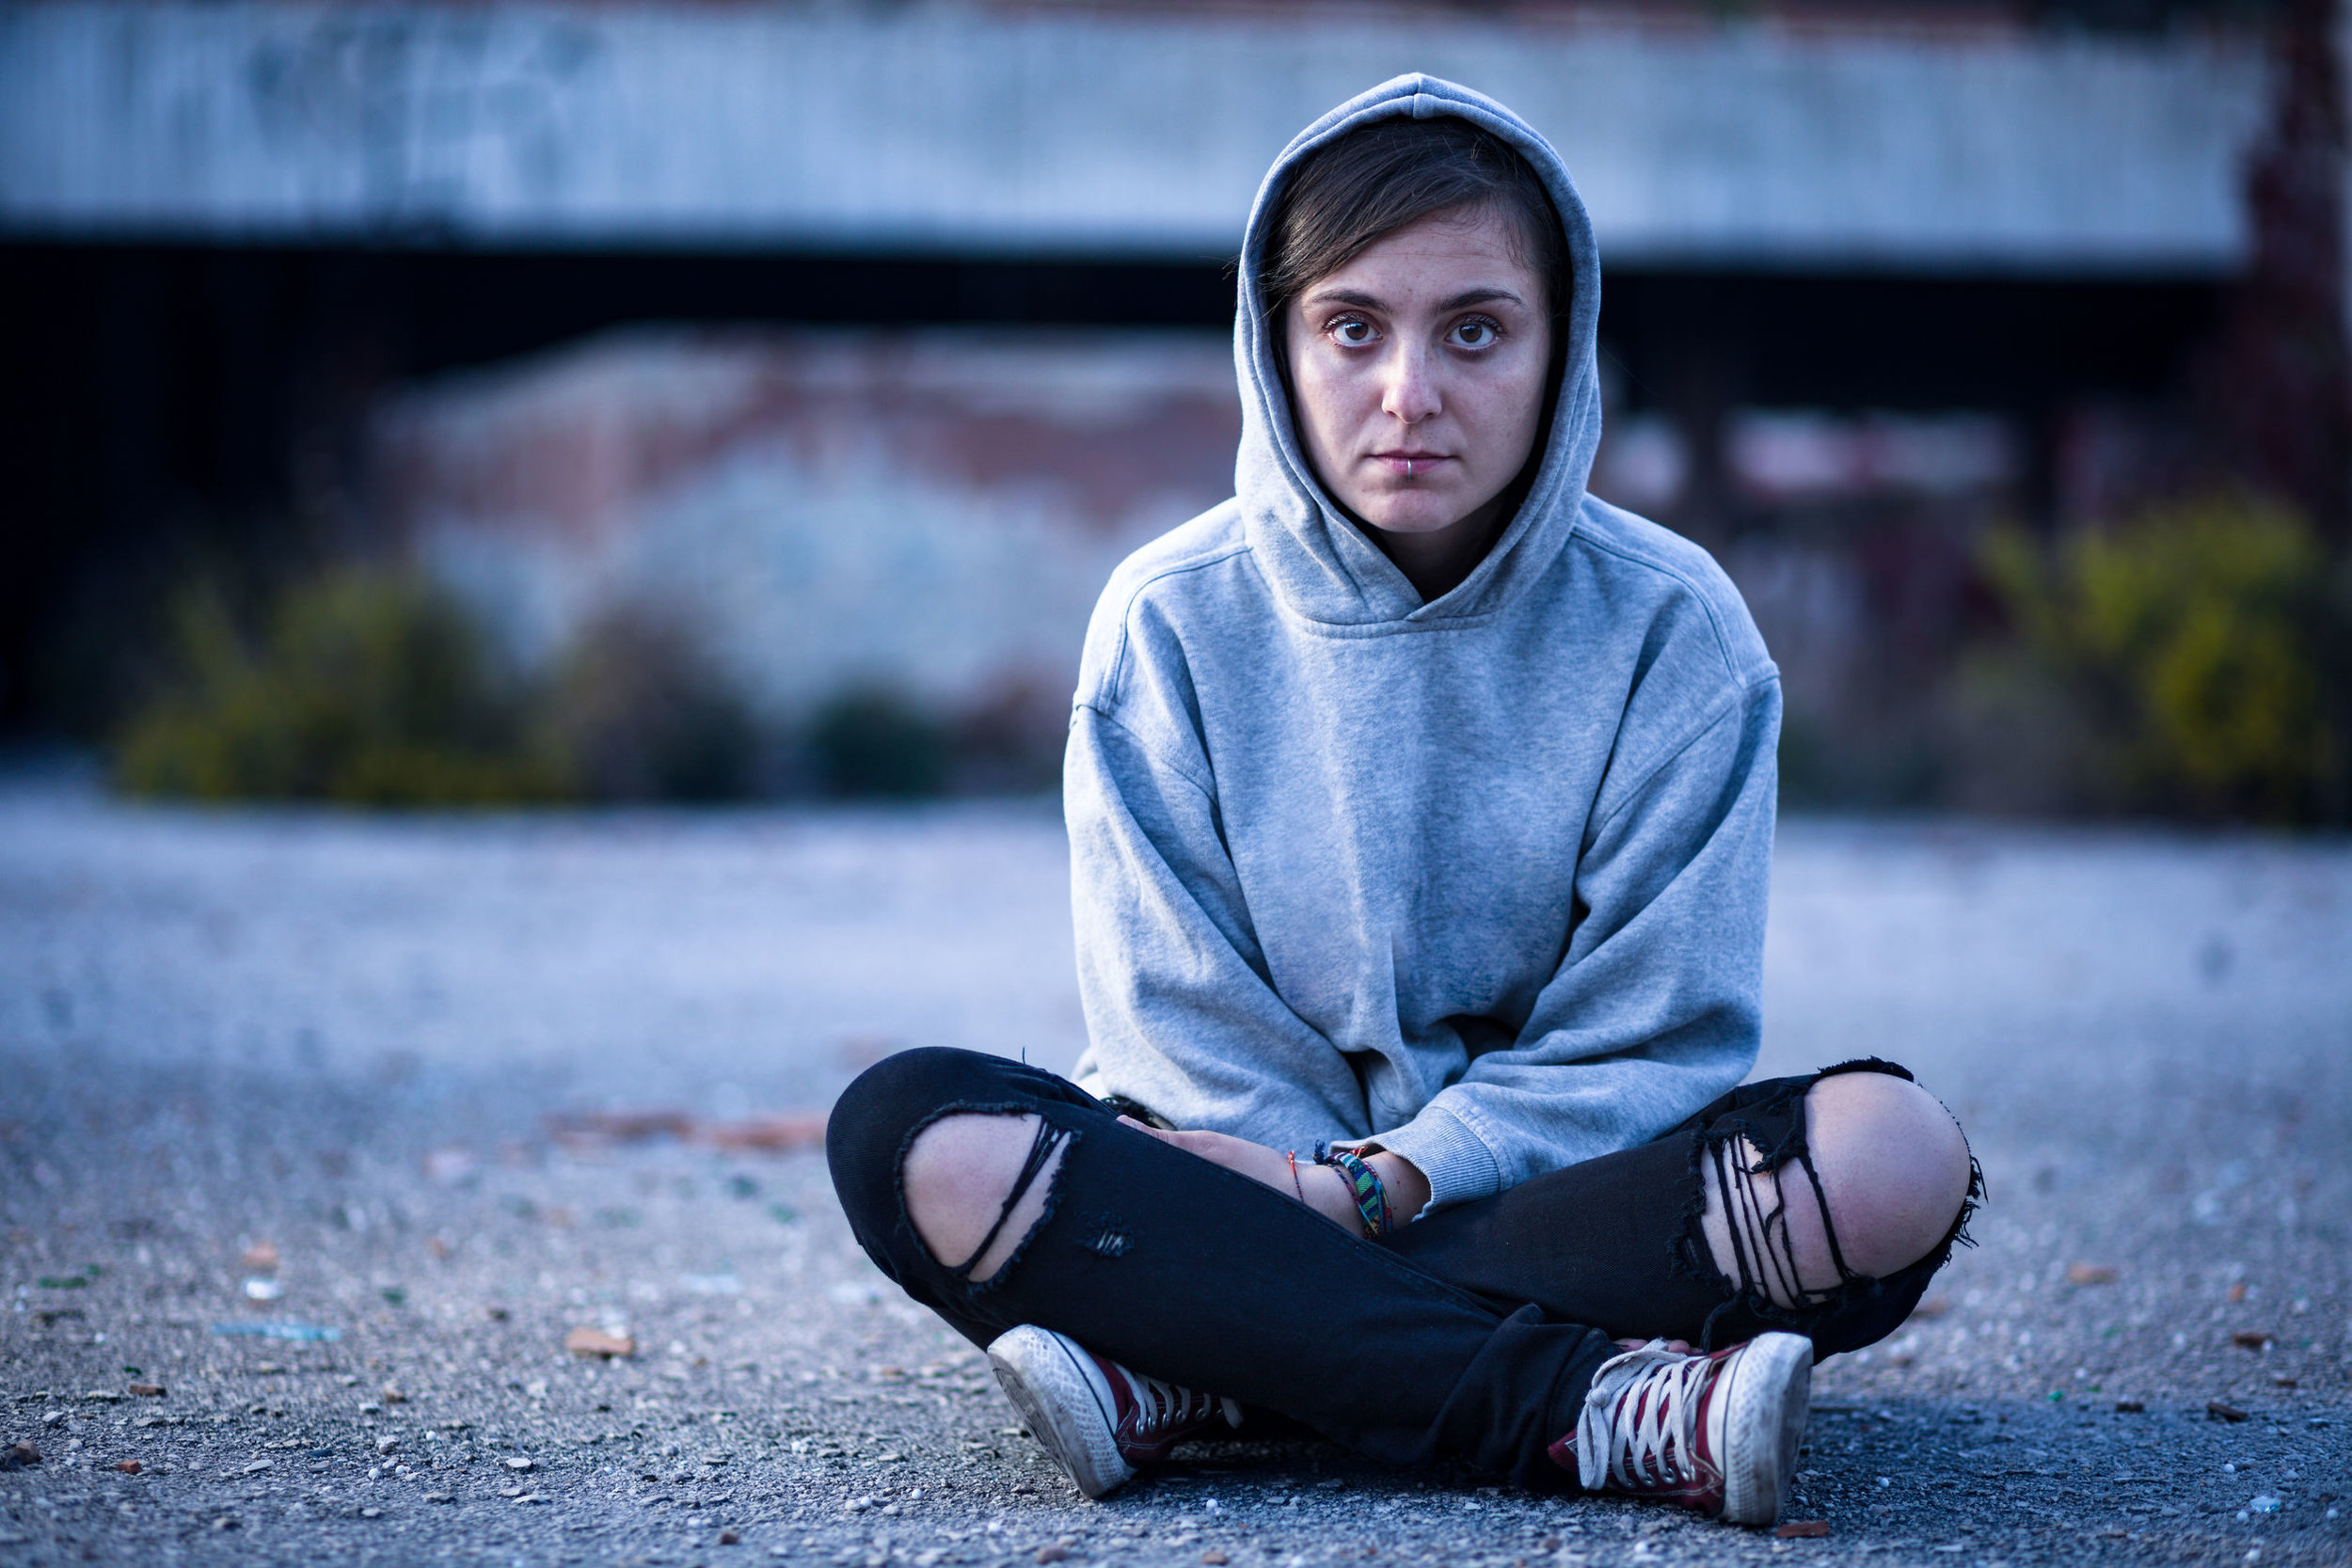 Woman with Sweatshirt and Torn Trousers Sitting on the Street.jpg